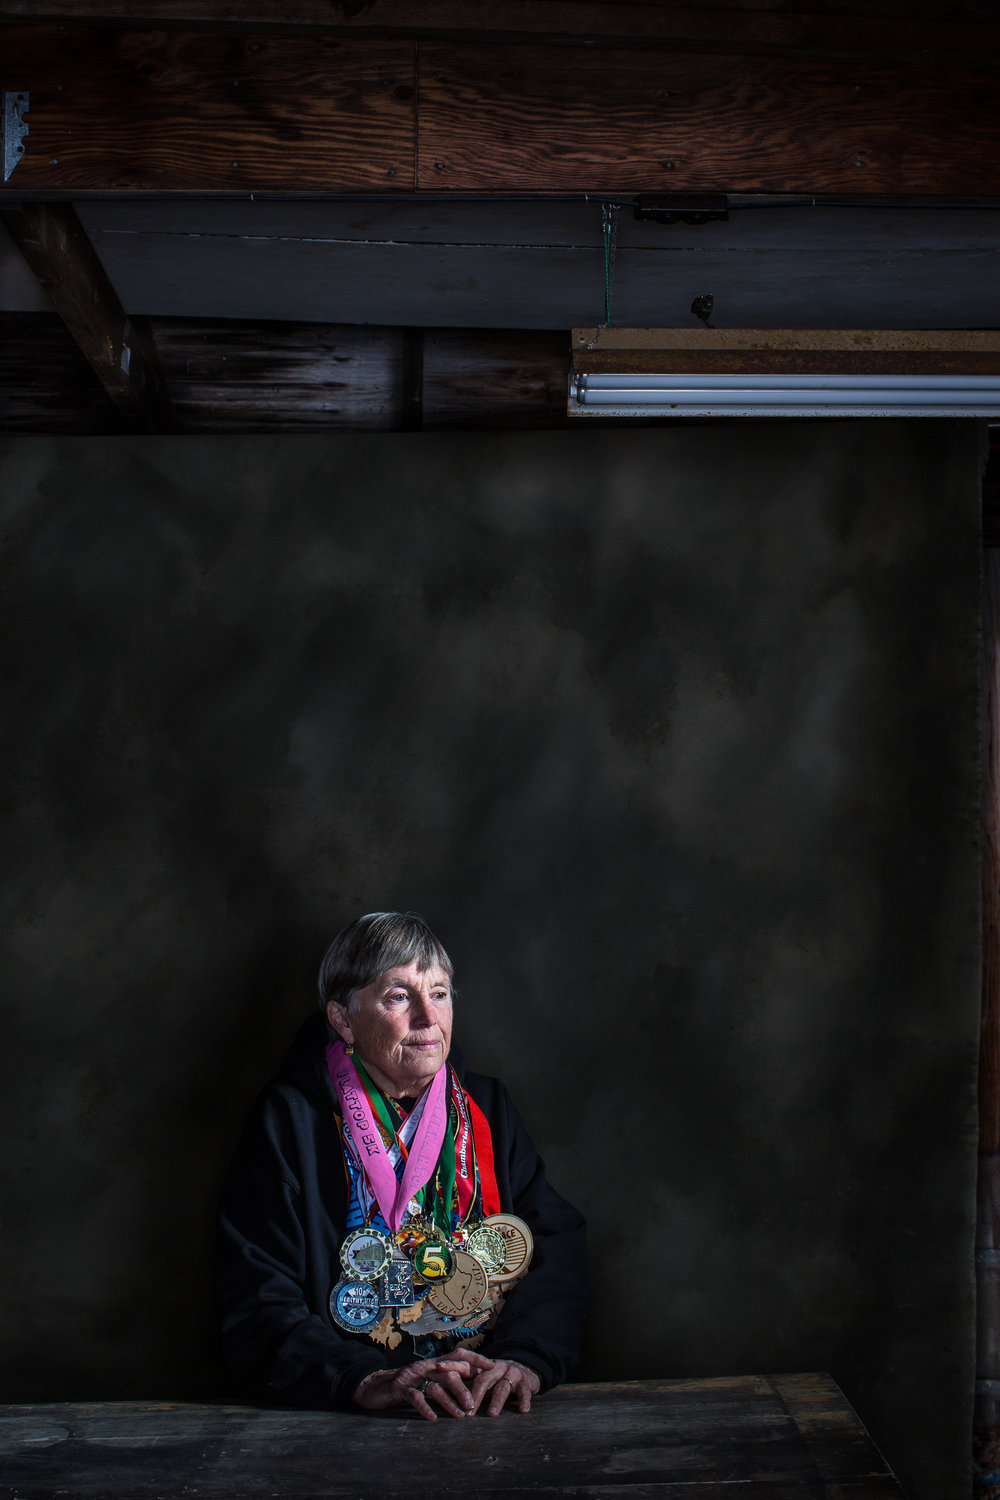 """Robin Emery, 72, of Lamoine, Maine has been running races for more than 50 years and logged enough miles to circumnavigate the globe one and a half times. Participating in approximately 30 races a year and running every day, she has pushed through physical adversity, such as once suffering a frozen eyeball due to weather conditions (she now runs with ski goggles in colder temps), and also broken through societal norms. When Robin signed up to run her first race in 1972, she was the first woman to ever enter the race. """"Women weren't supposed to sweat or be competitive then,"""" she said. """"It wasn't feminine."""" After entering the race and completing it three years in a row, she was finally given recognition: a basketball trophy, with a man on top. Photographed here in the garage of her family's home since the early 1900s, Robin's house is now filled with a life story of trophies, medals, race photos, plaques and memories from the myriad races she's won and participated in over the decades. Robin, who also was an elementary school teacher for more than 50 years, has a long-standing legacy in Maine. She was the second woman to ever be inducted into the Maine Running Hall of Fame, and also has a trophy named after her at that same Labor Day race."""